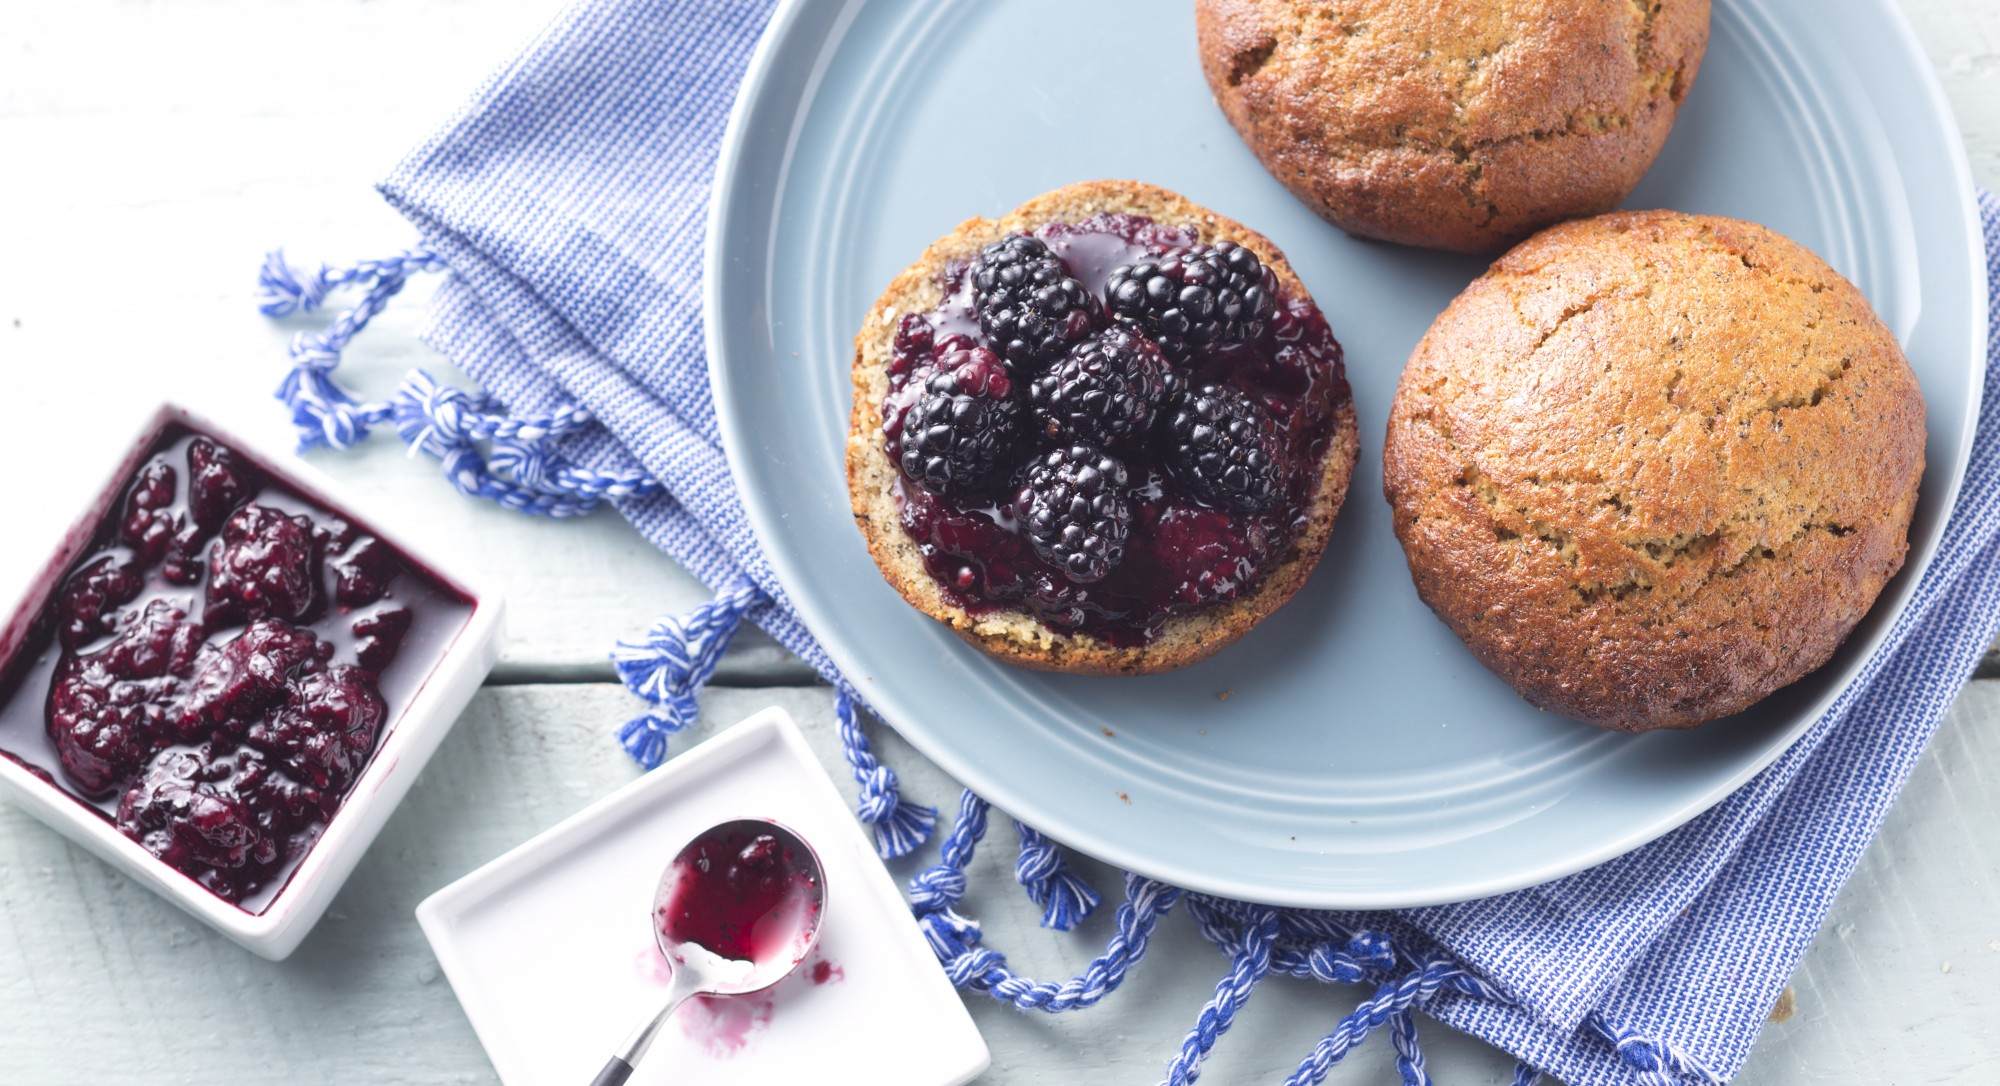 Earl Grey Shortcakes with Lavender-Blackberry Compote